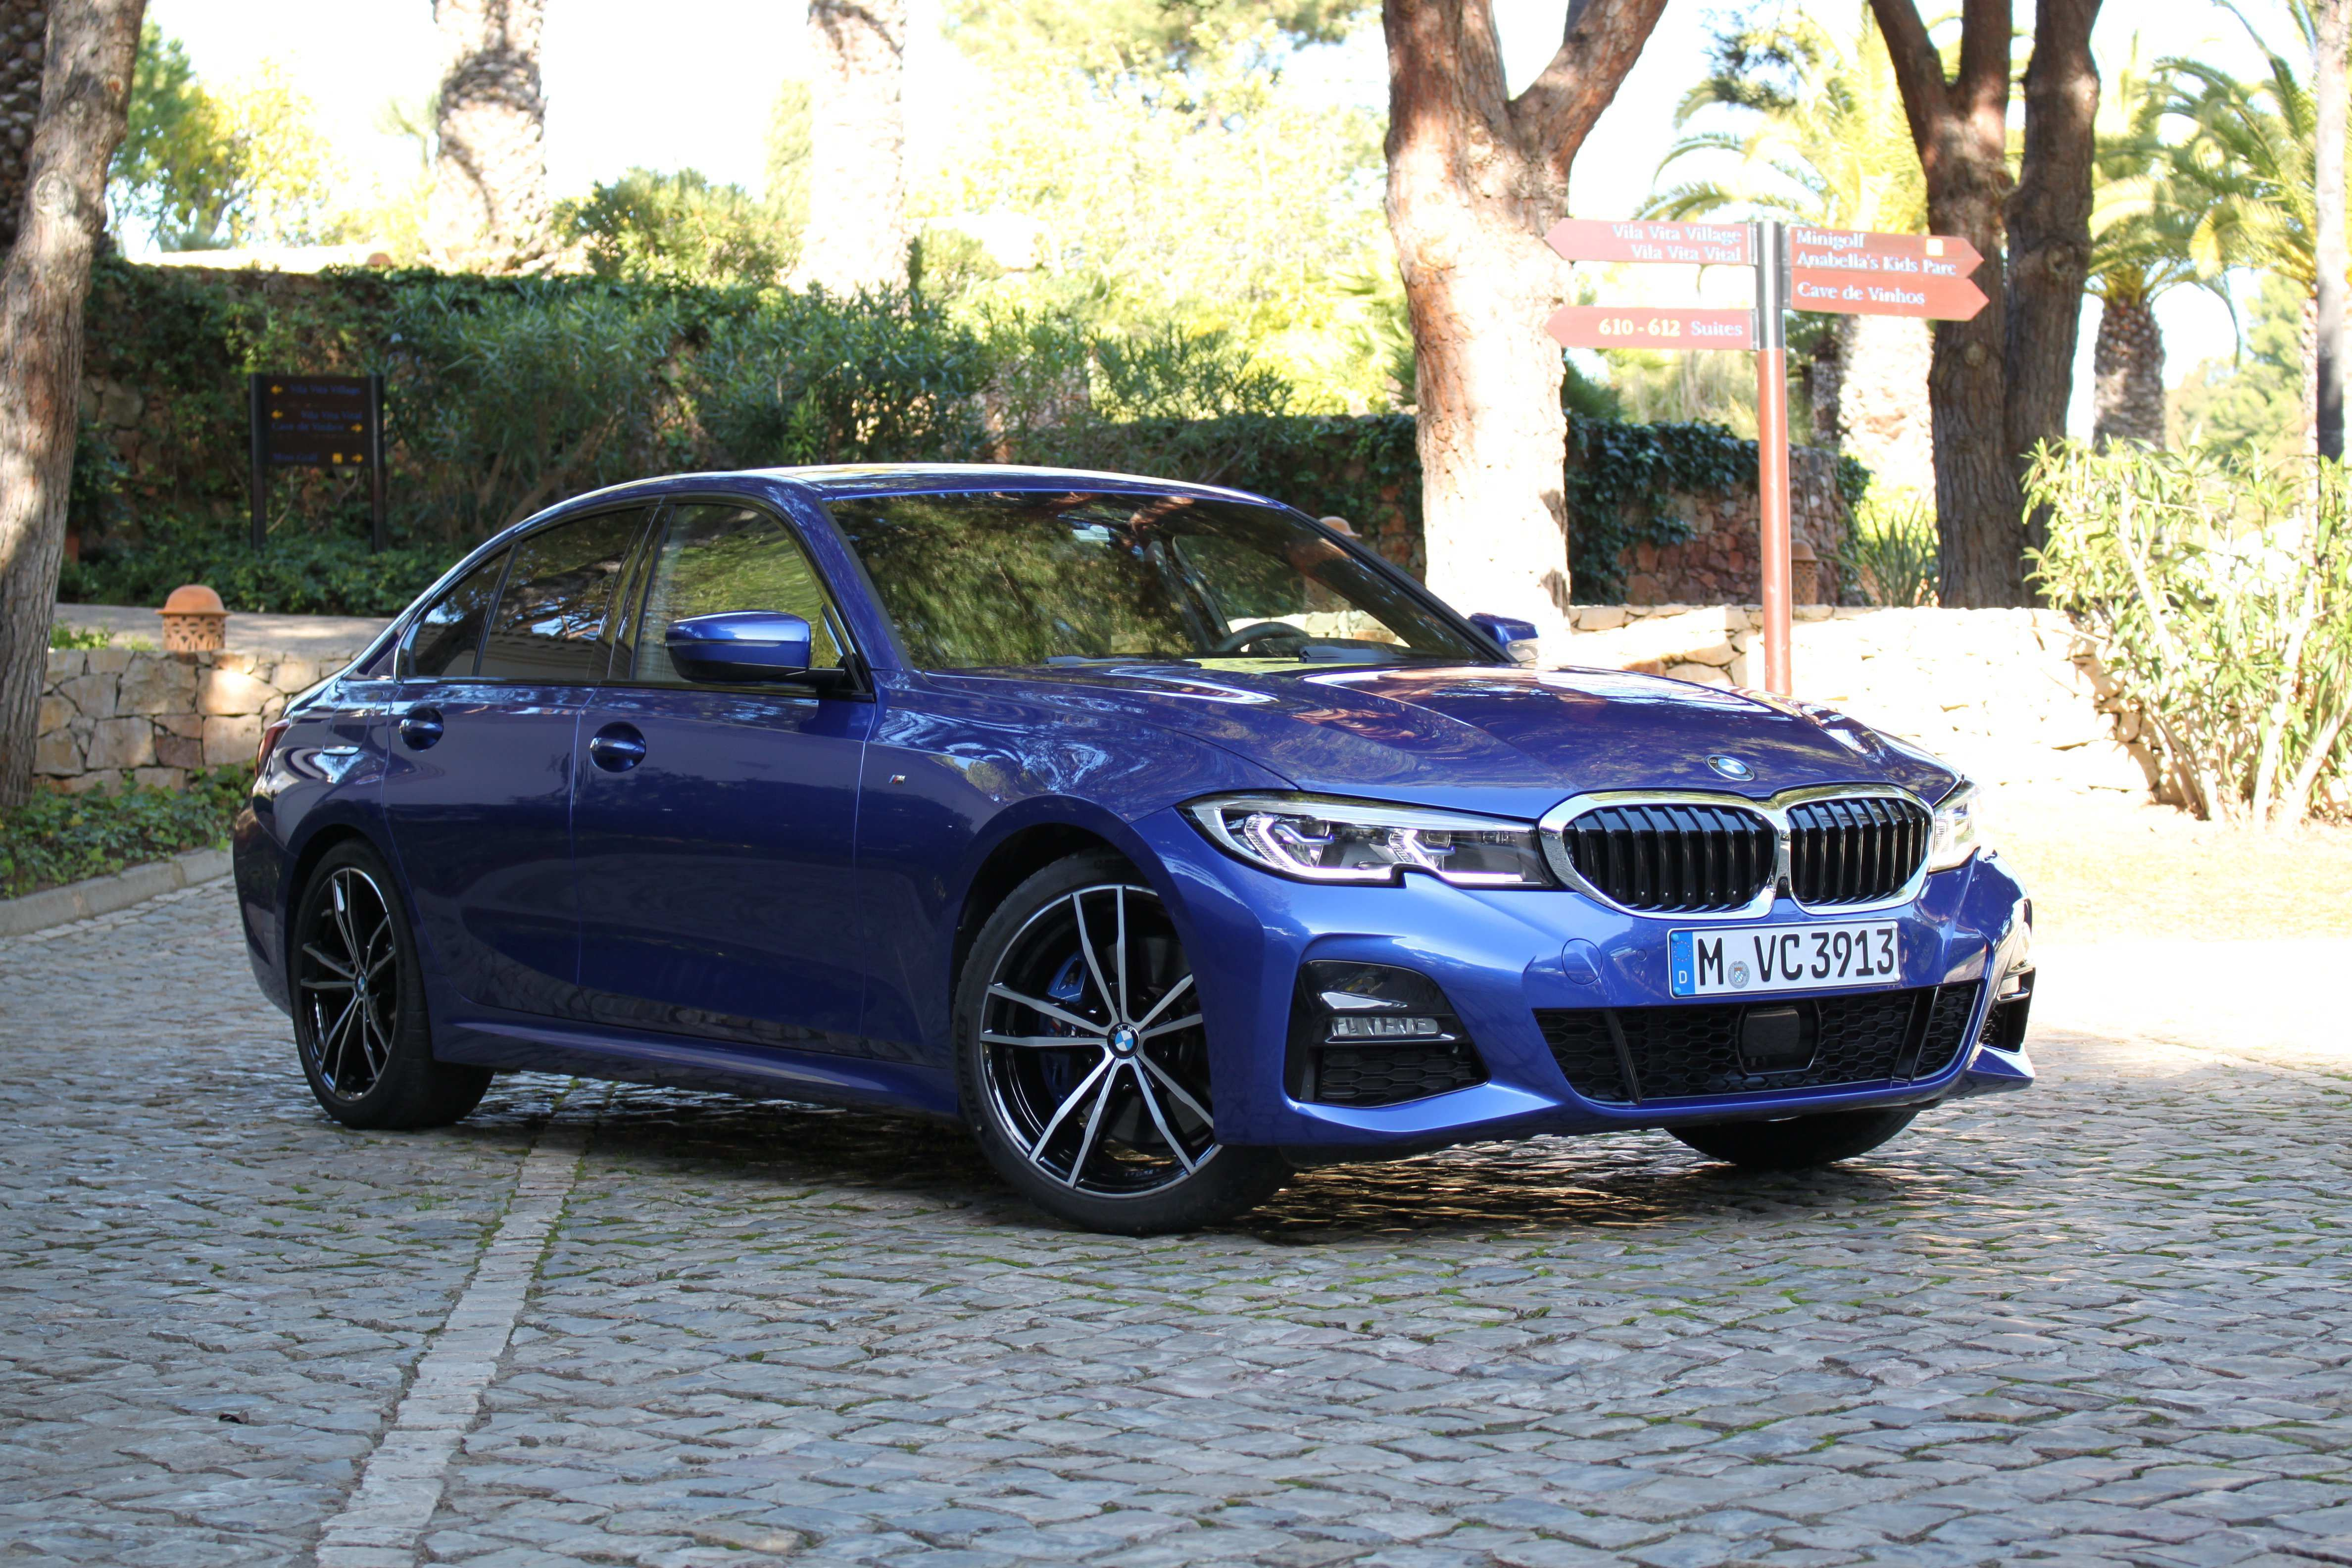 95 The Best BMW New 3 Series 2020 Research New